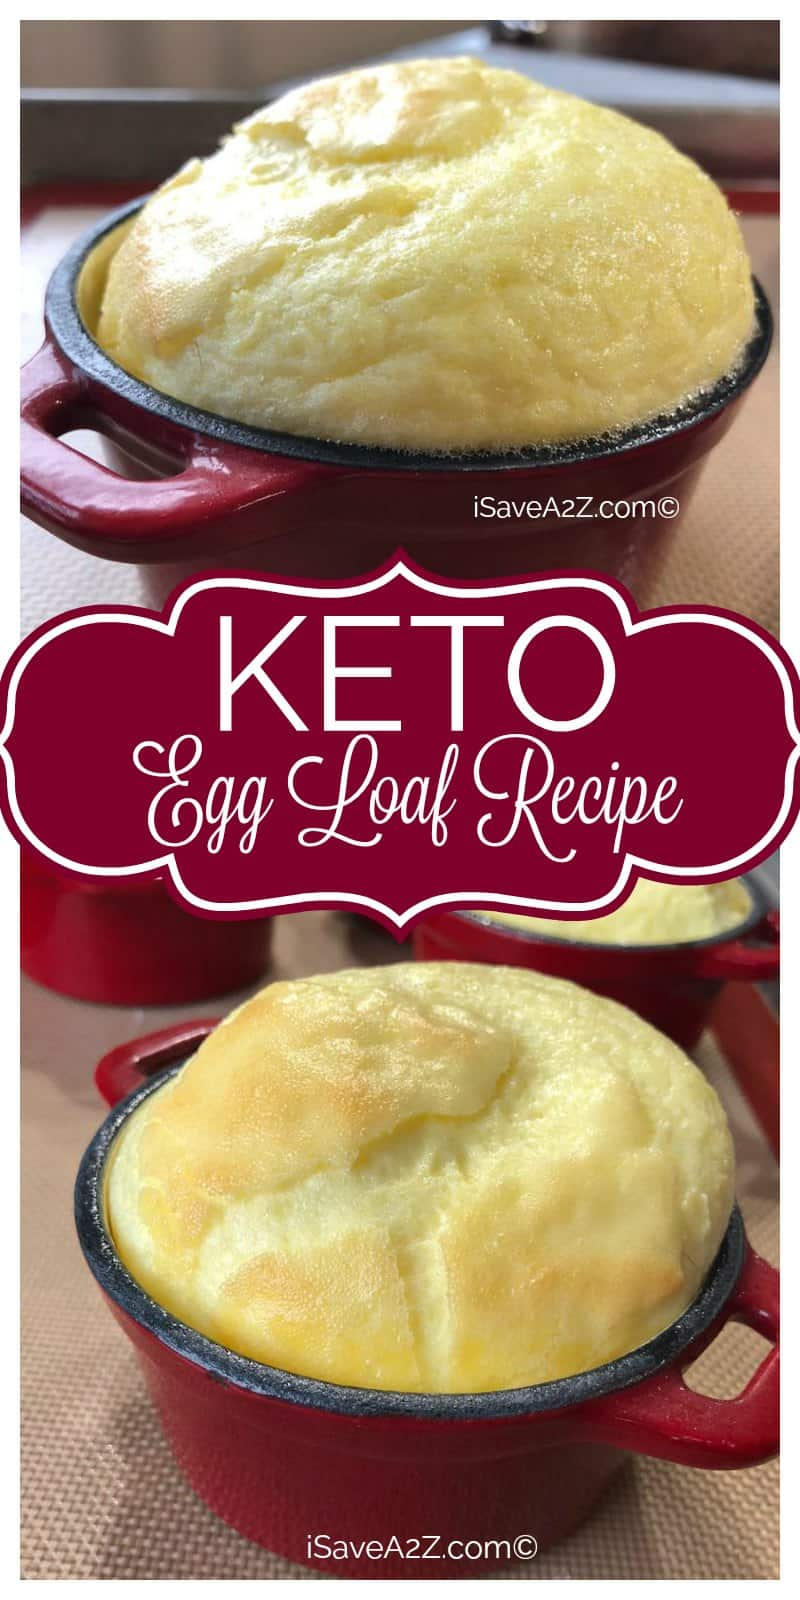 Keto Egg Loaf Recipe pinterest